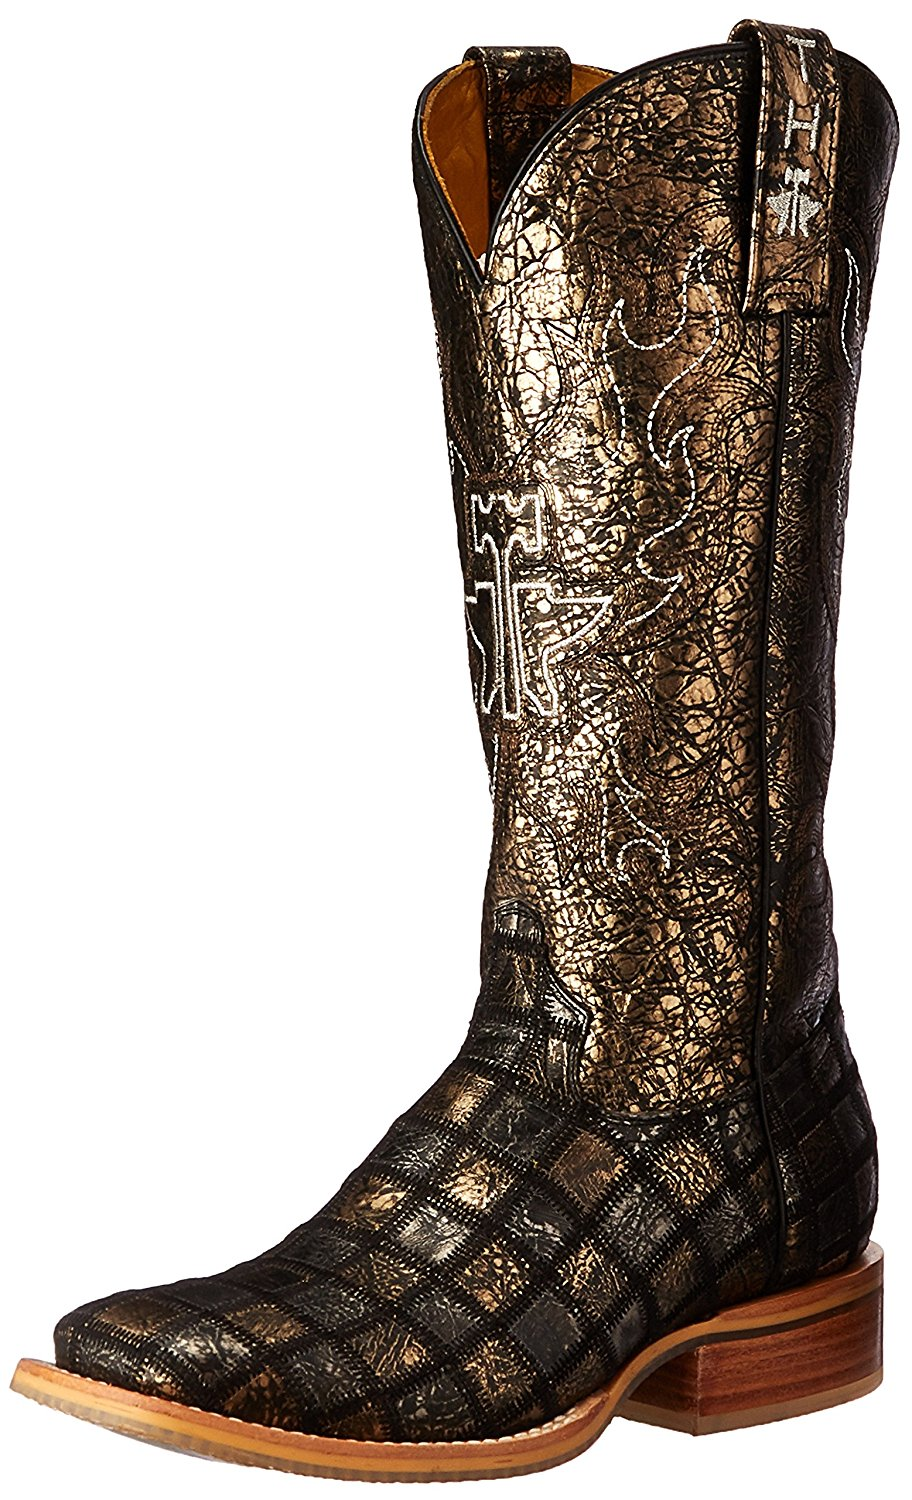 3a71224baea ... Size 8 Bible Verse MY SAVIOR JOHN 3 16 Crosses Crown of Thorns Square  Toe Transparent Sole Cowboy Boots 309.99. Tin Haul Shoes Women s Meow Work  Boot